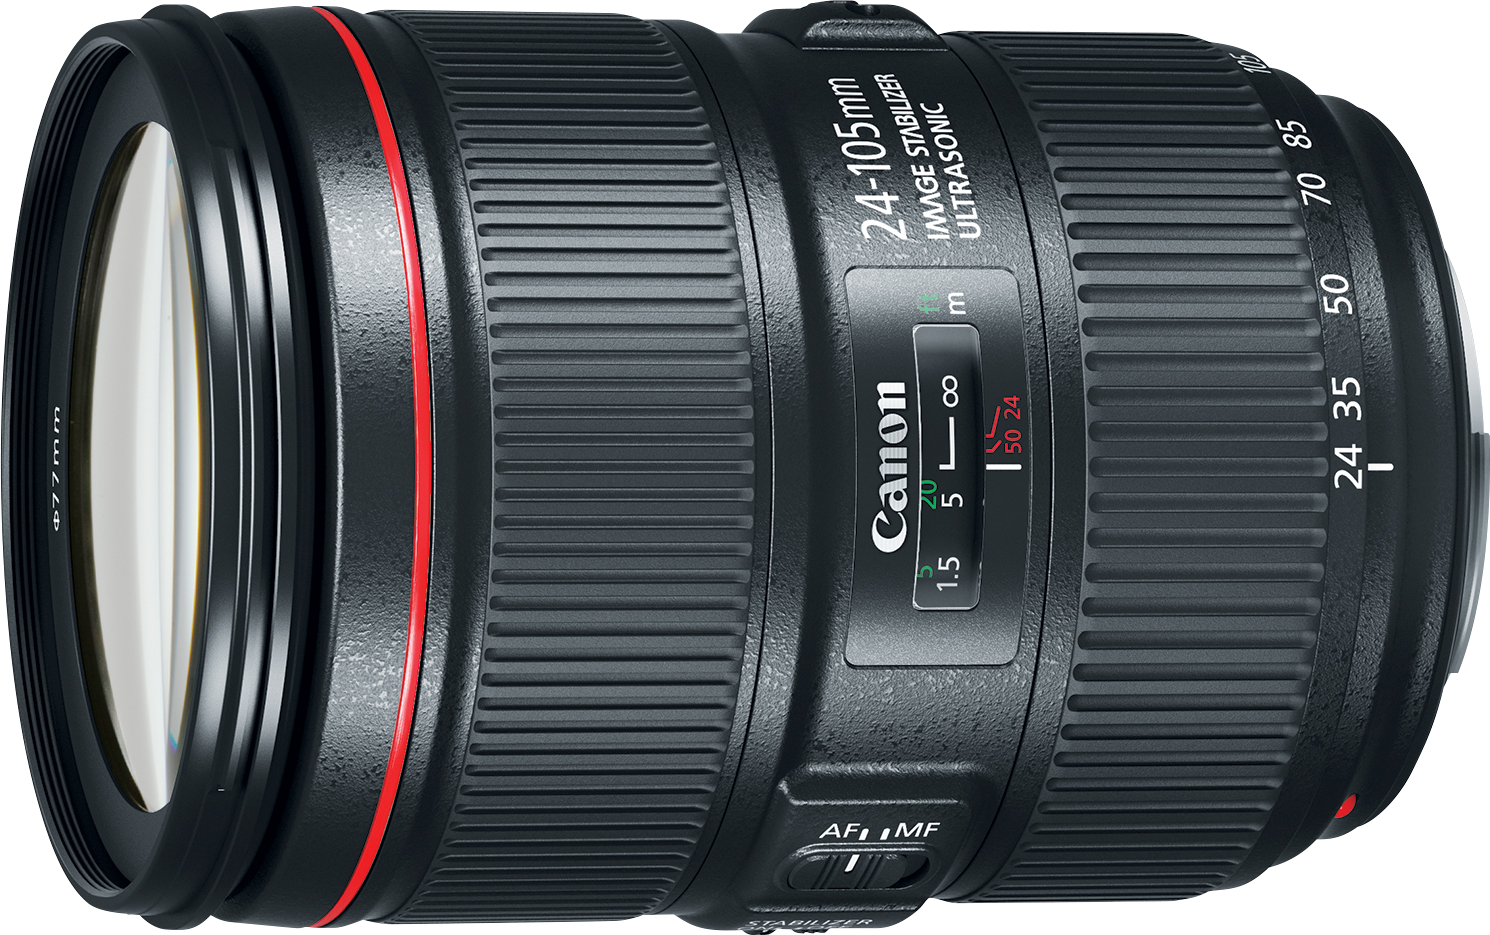 canon ef 24 105mm f4l is ii usm digital photography review rh dpreview com canon 24-105 instruction manual Canon 24 105 II